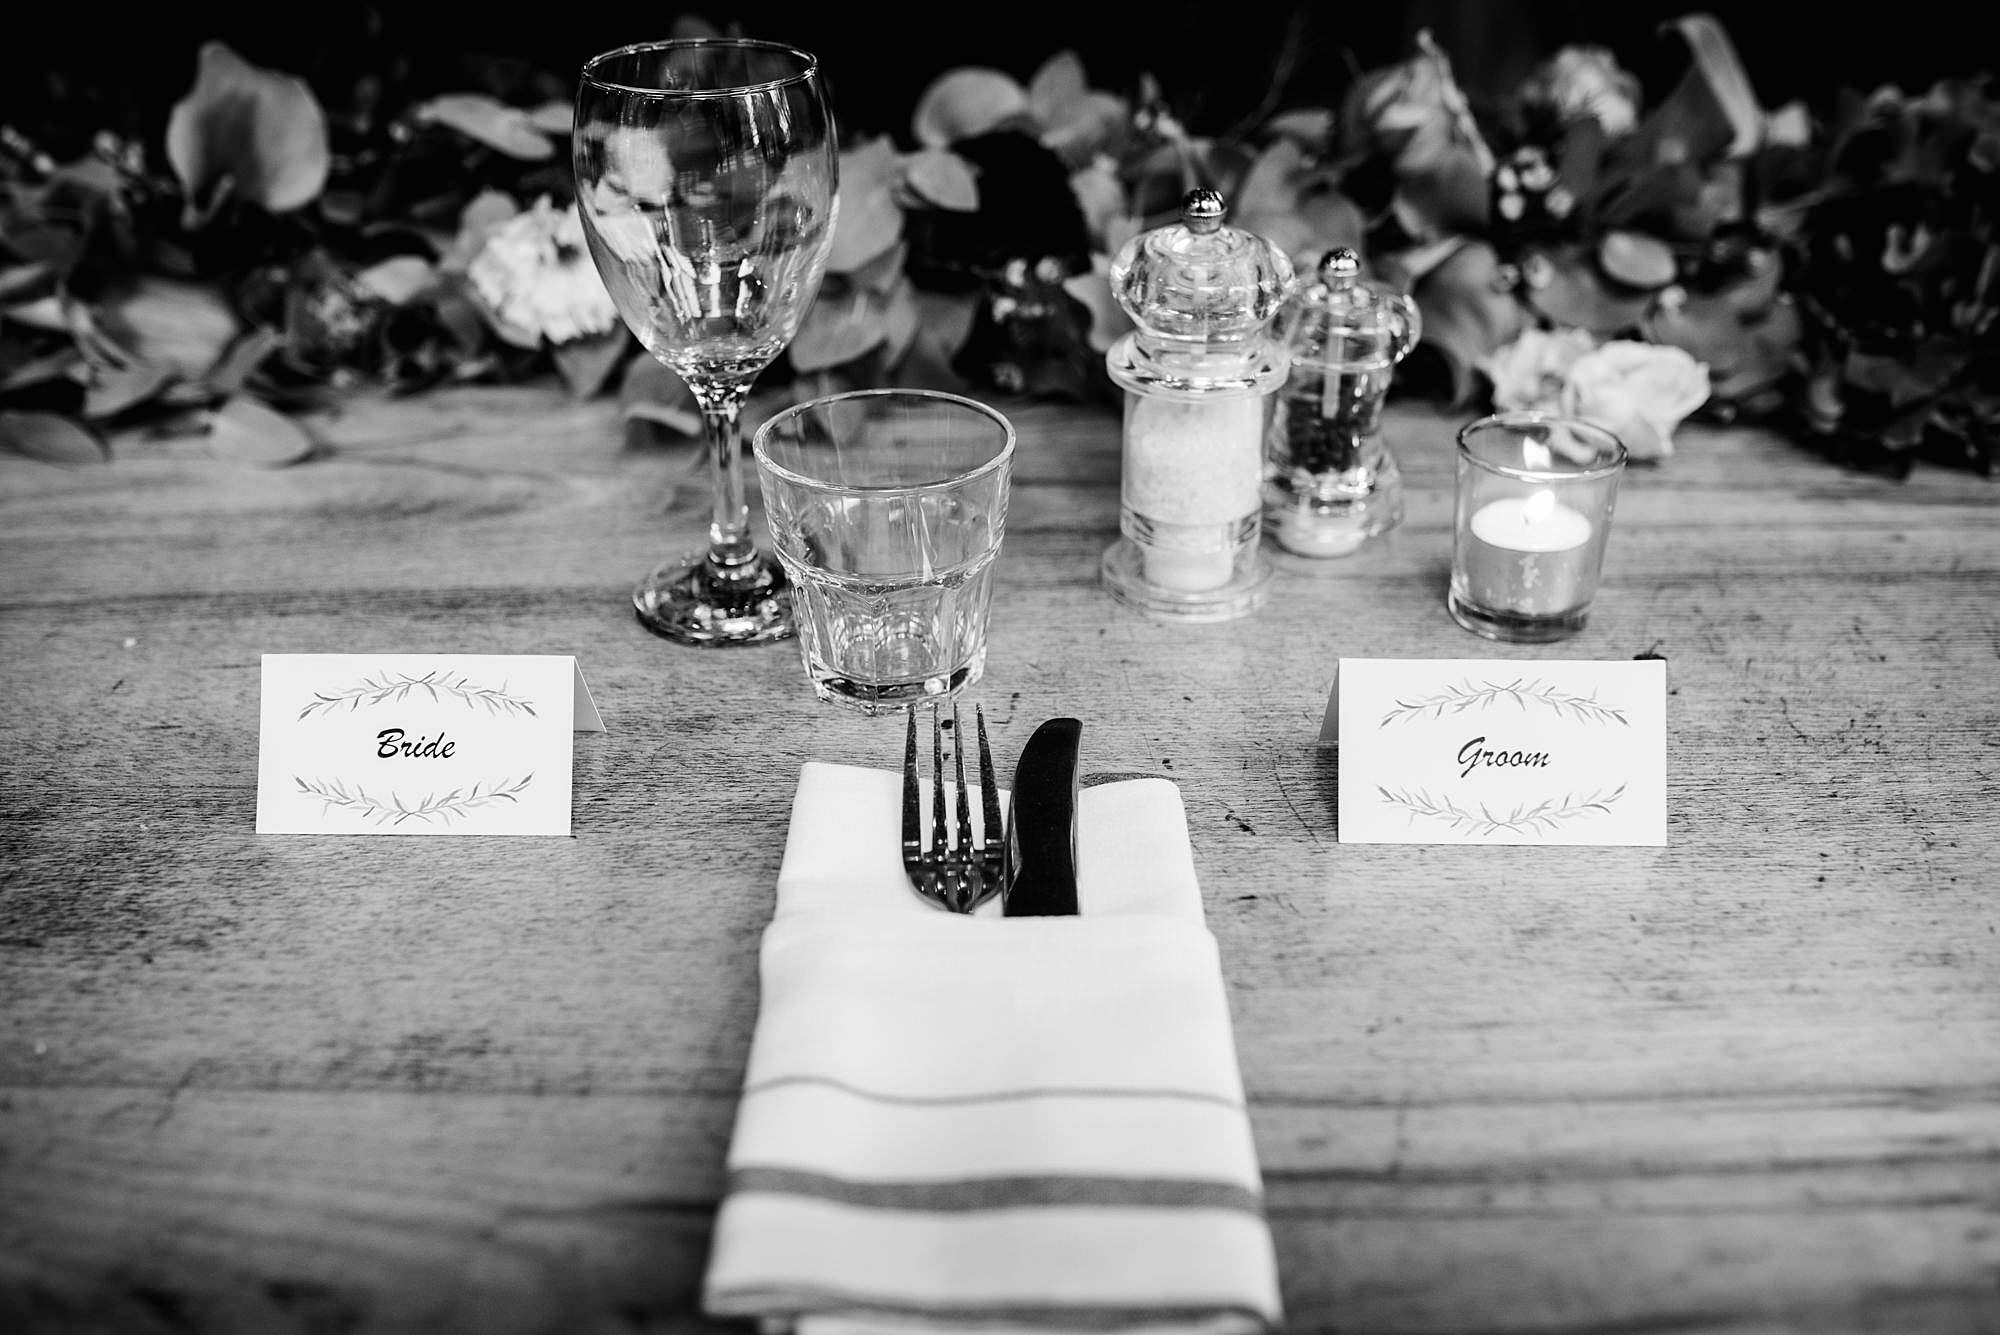 The Union Paddington wedding bride and groom place settings